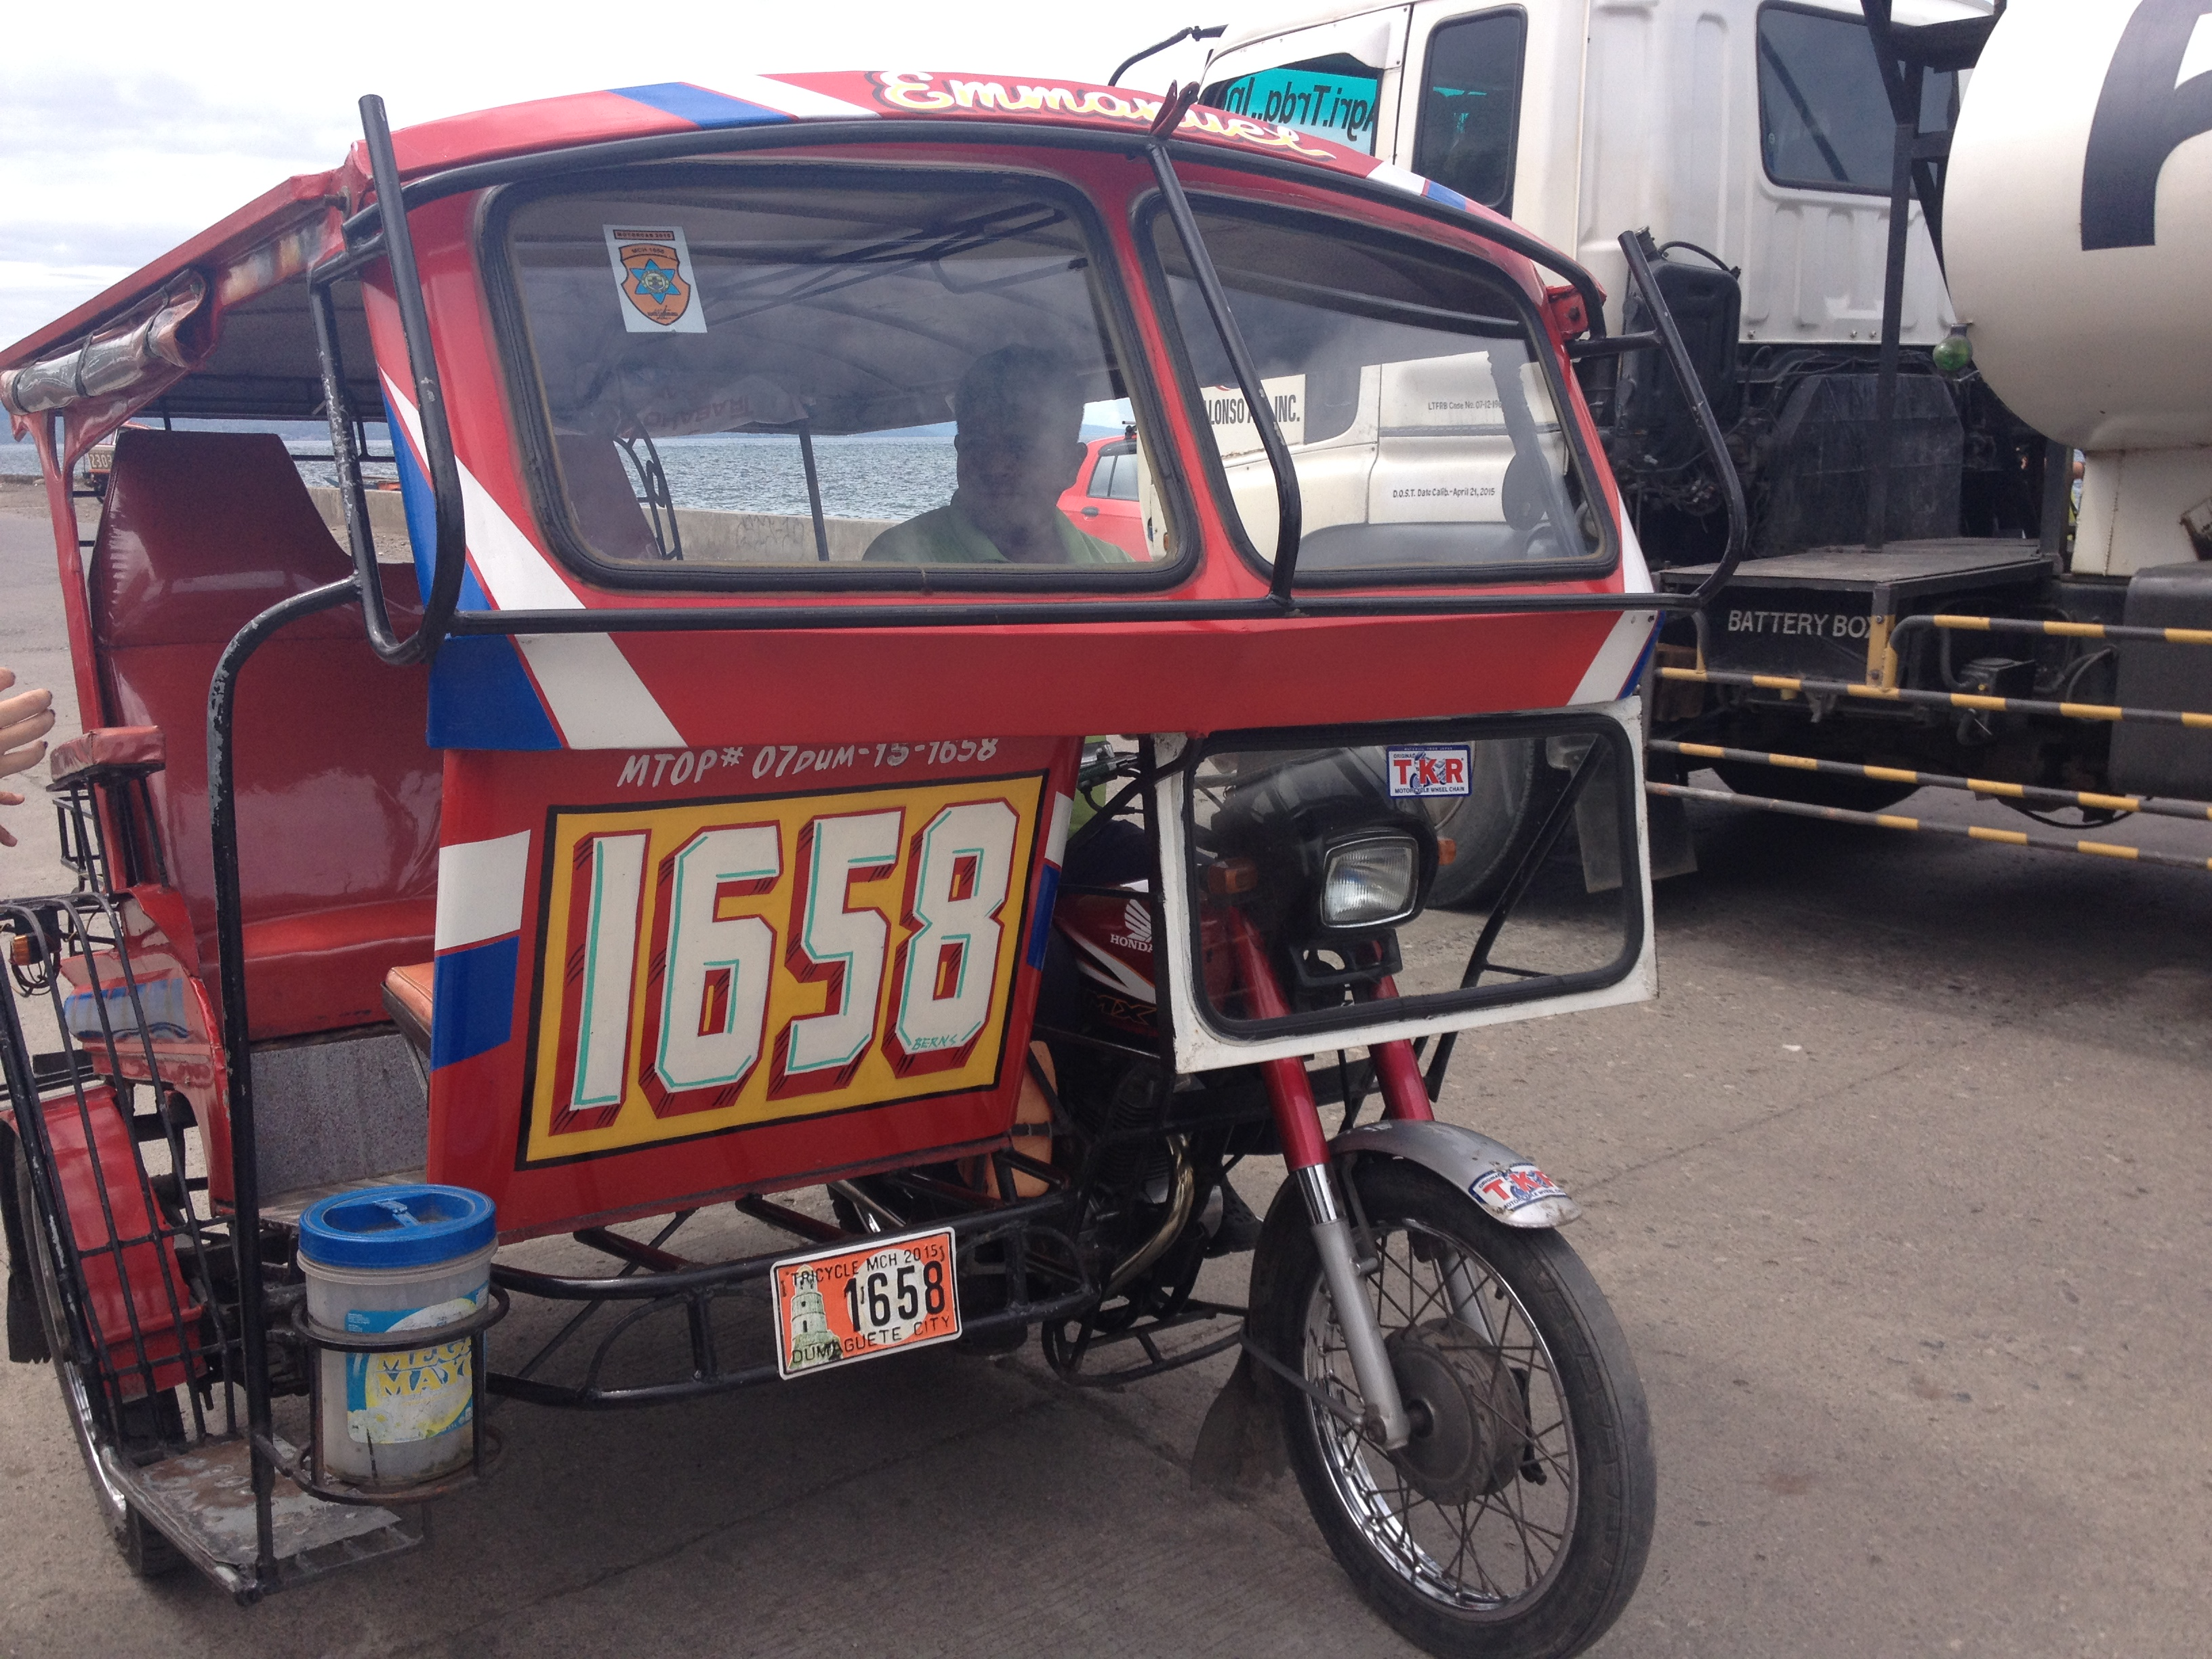 Tricycle a Dumaguete @oltreilbalcone